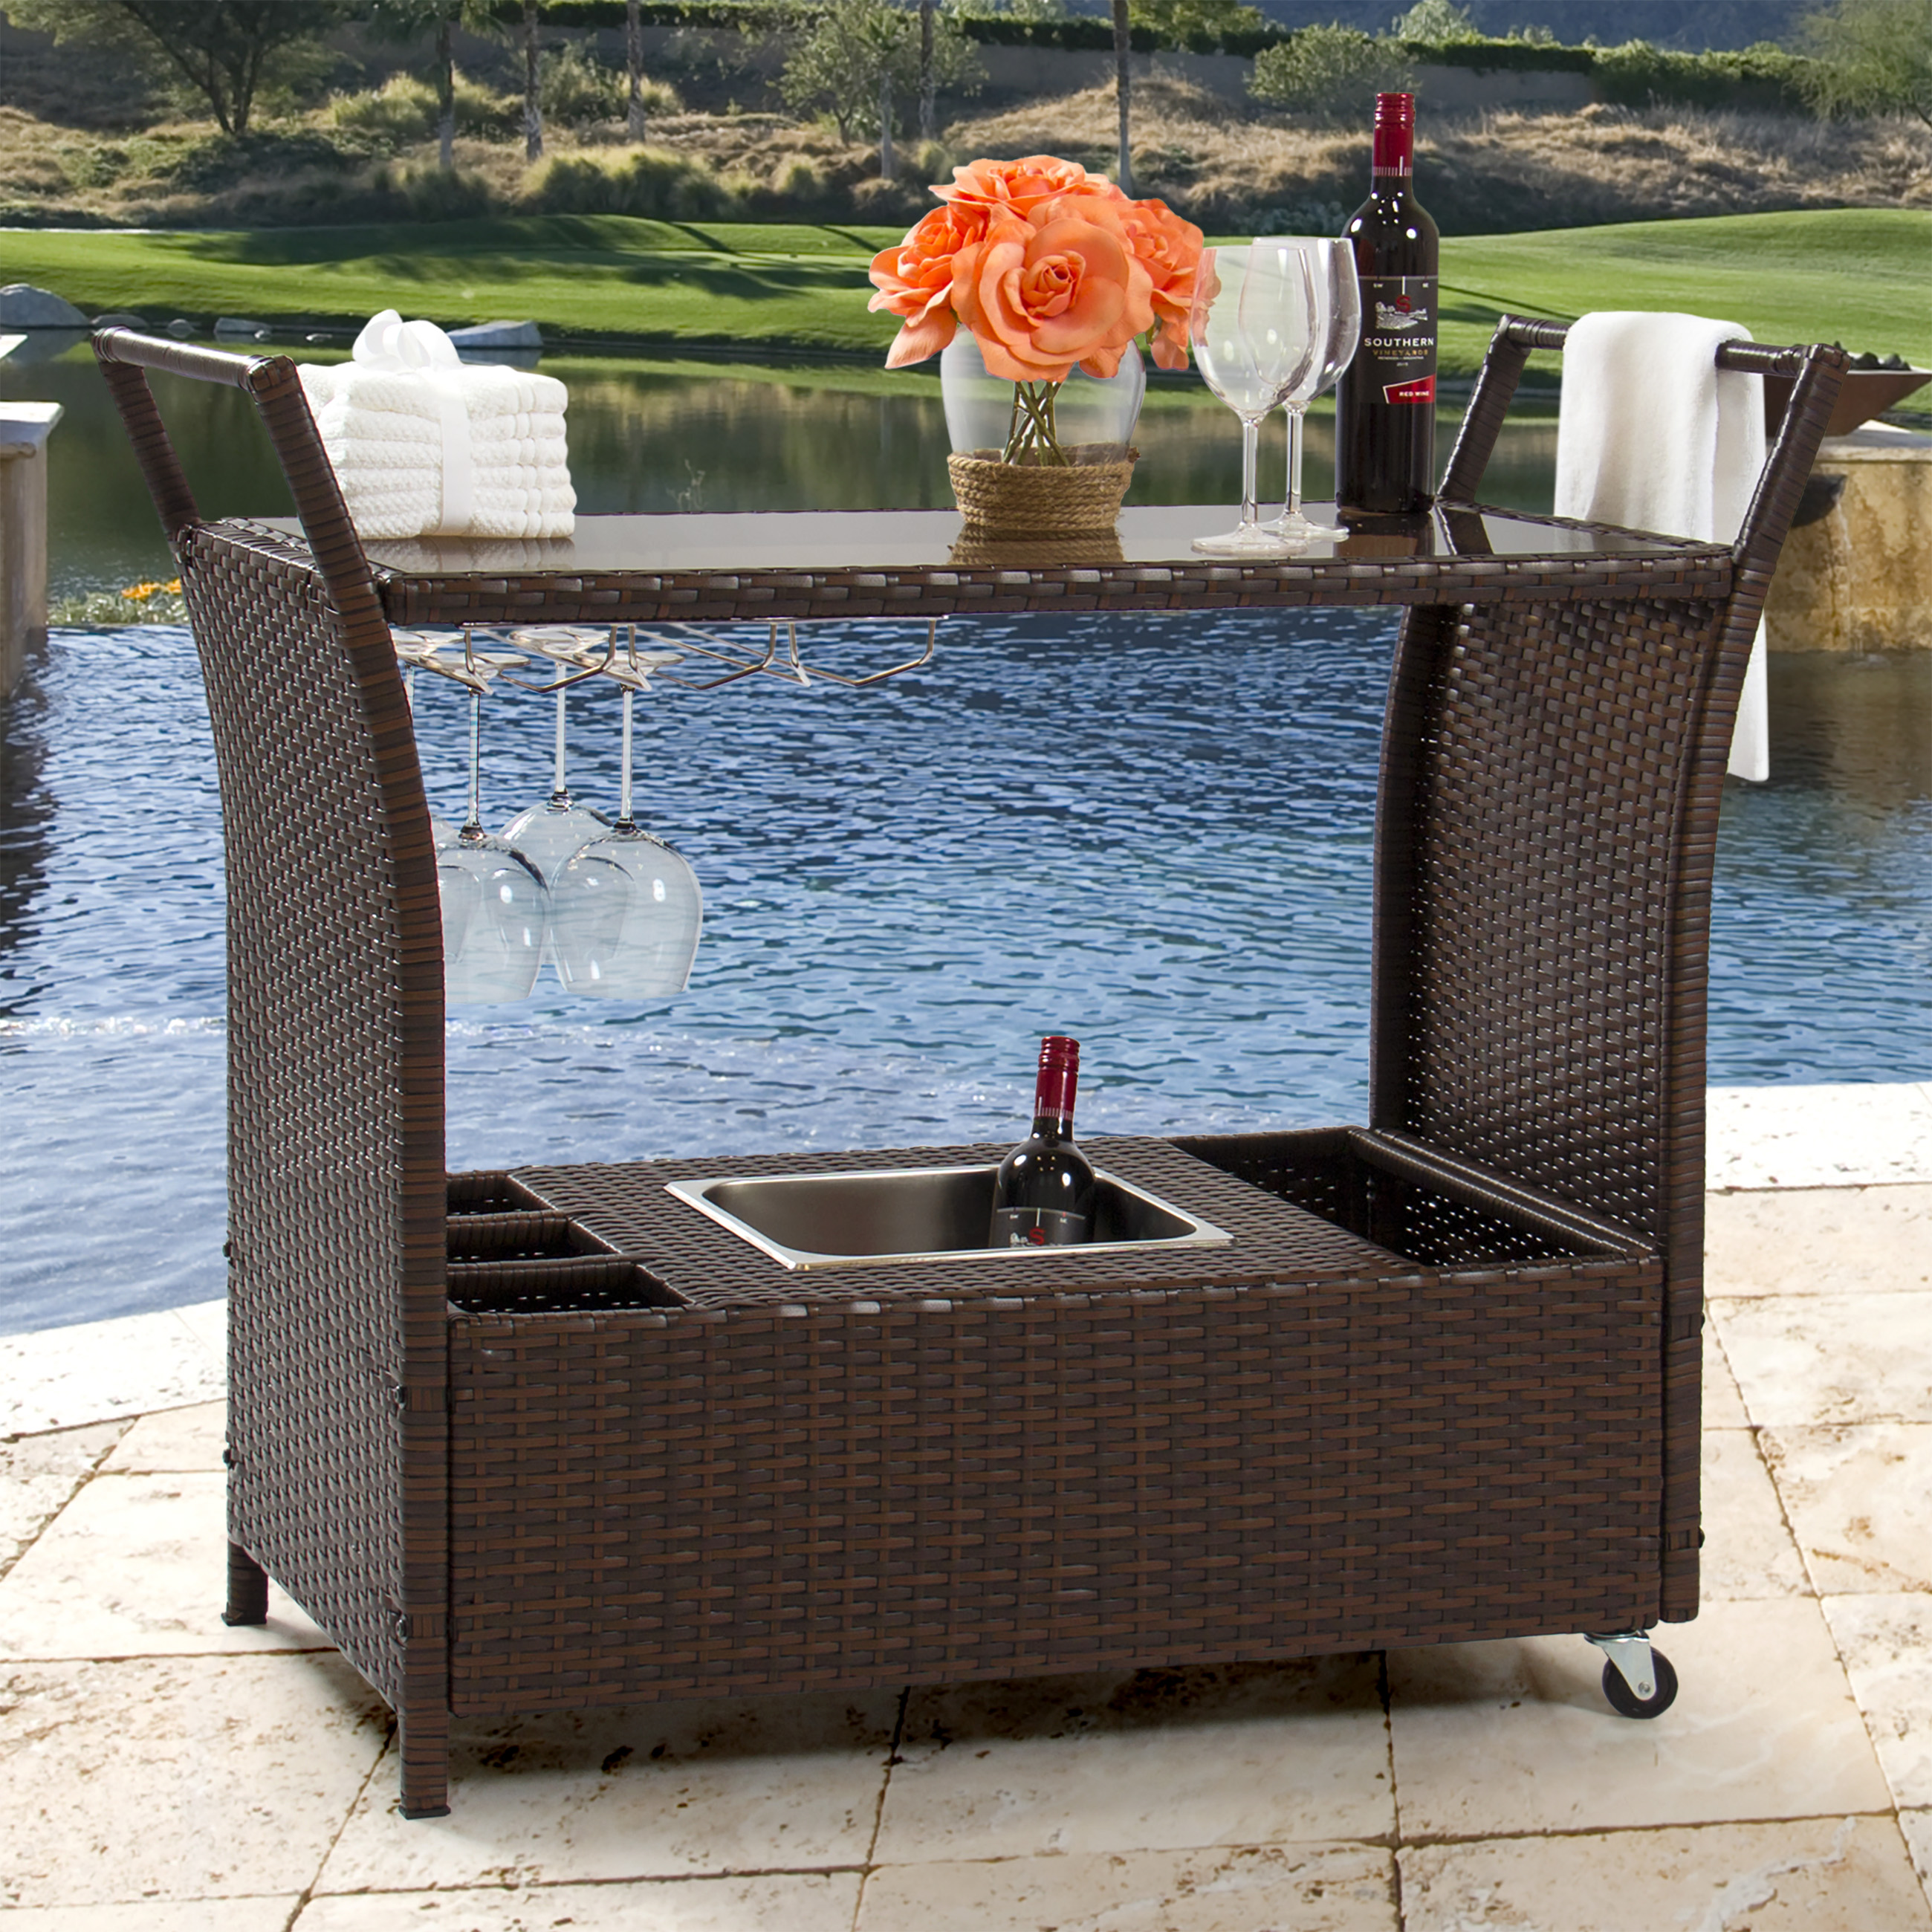 Best Choice Products Rolling Wicker Outdoor Bar Cart w/ Ice Bucket, Glass Countertop, Glass Holders, Storage - Brown